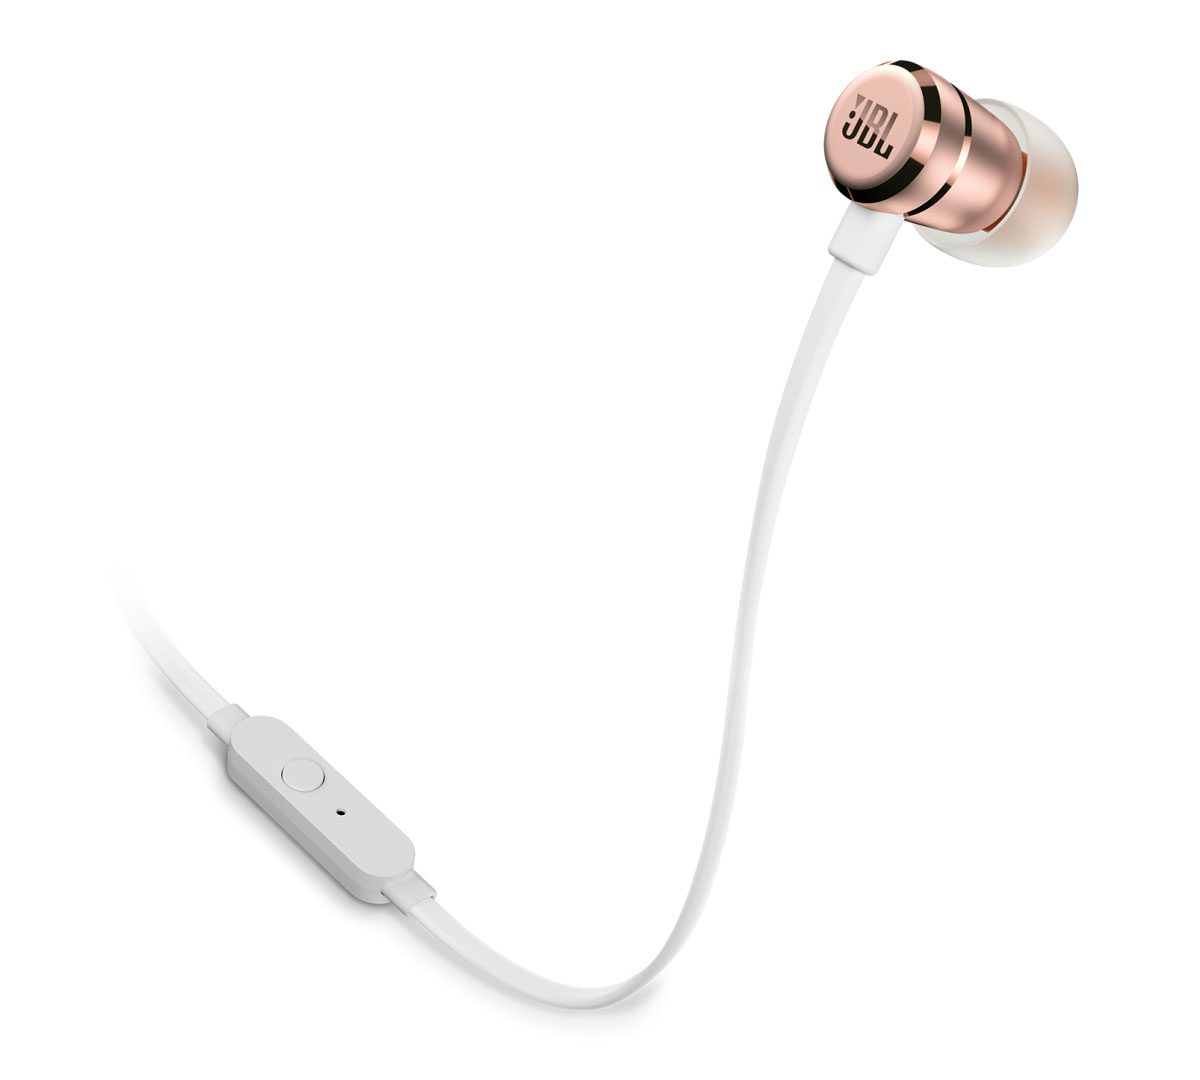 JBL T290 Gold In-Ear Headphones + JBL Pure Bass Sound + Single button remote/mic + Θήκη (κλήσεις & μουσική με flat καλώδιο)